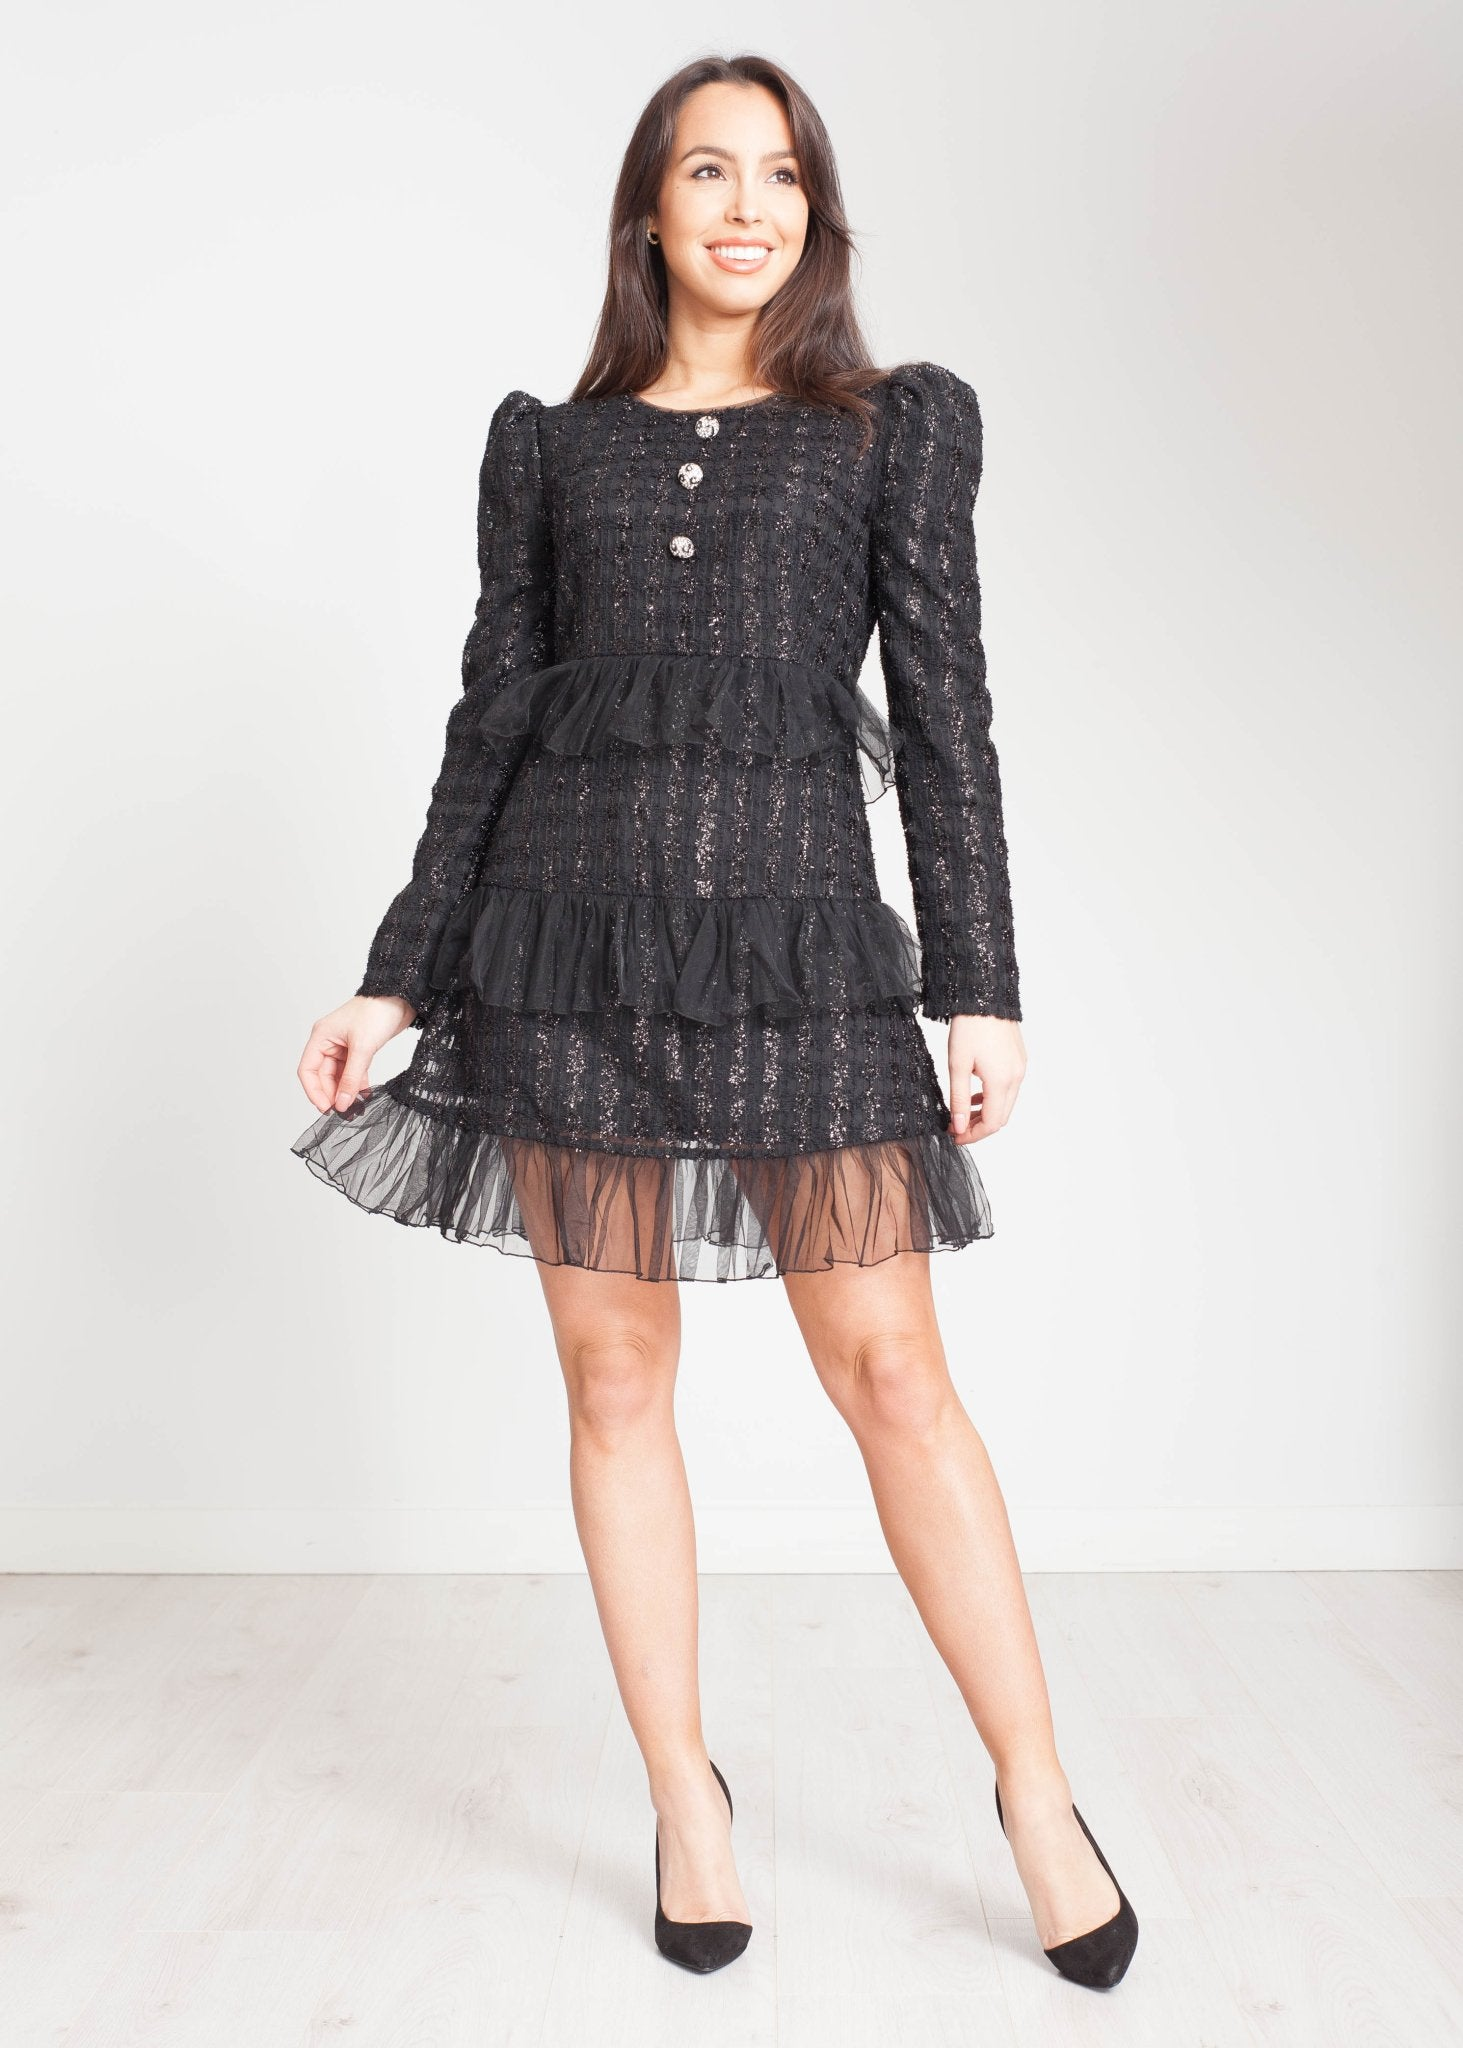 Jasmine Sparkle Mini Dress In Black - The Walk in Wardrobe